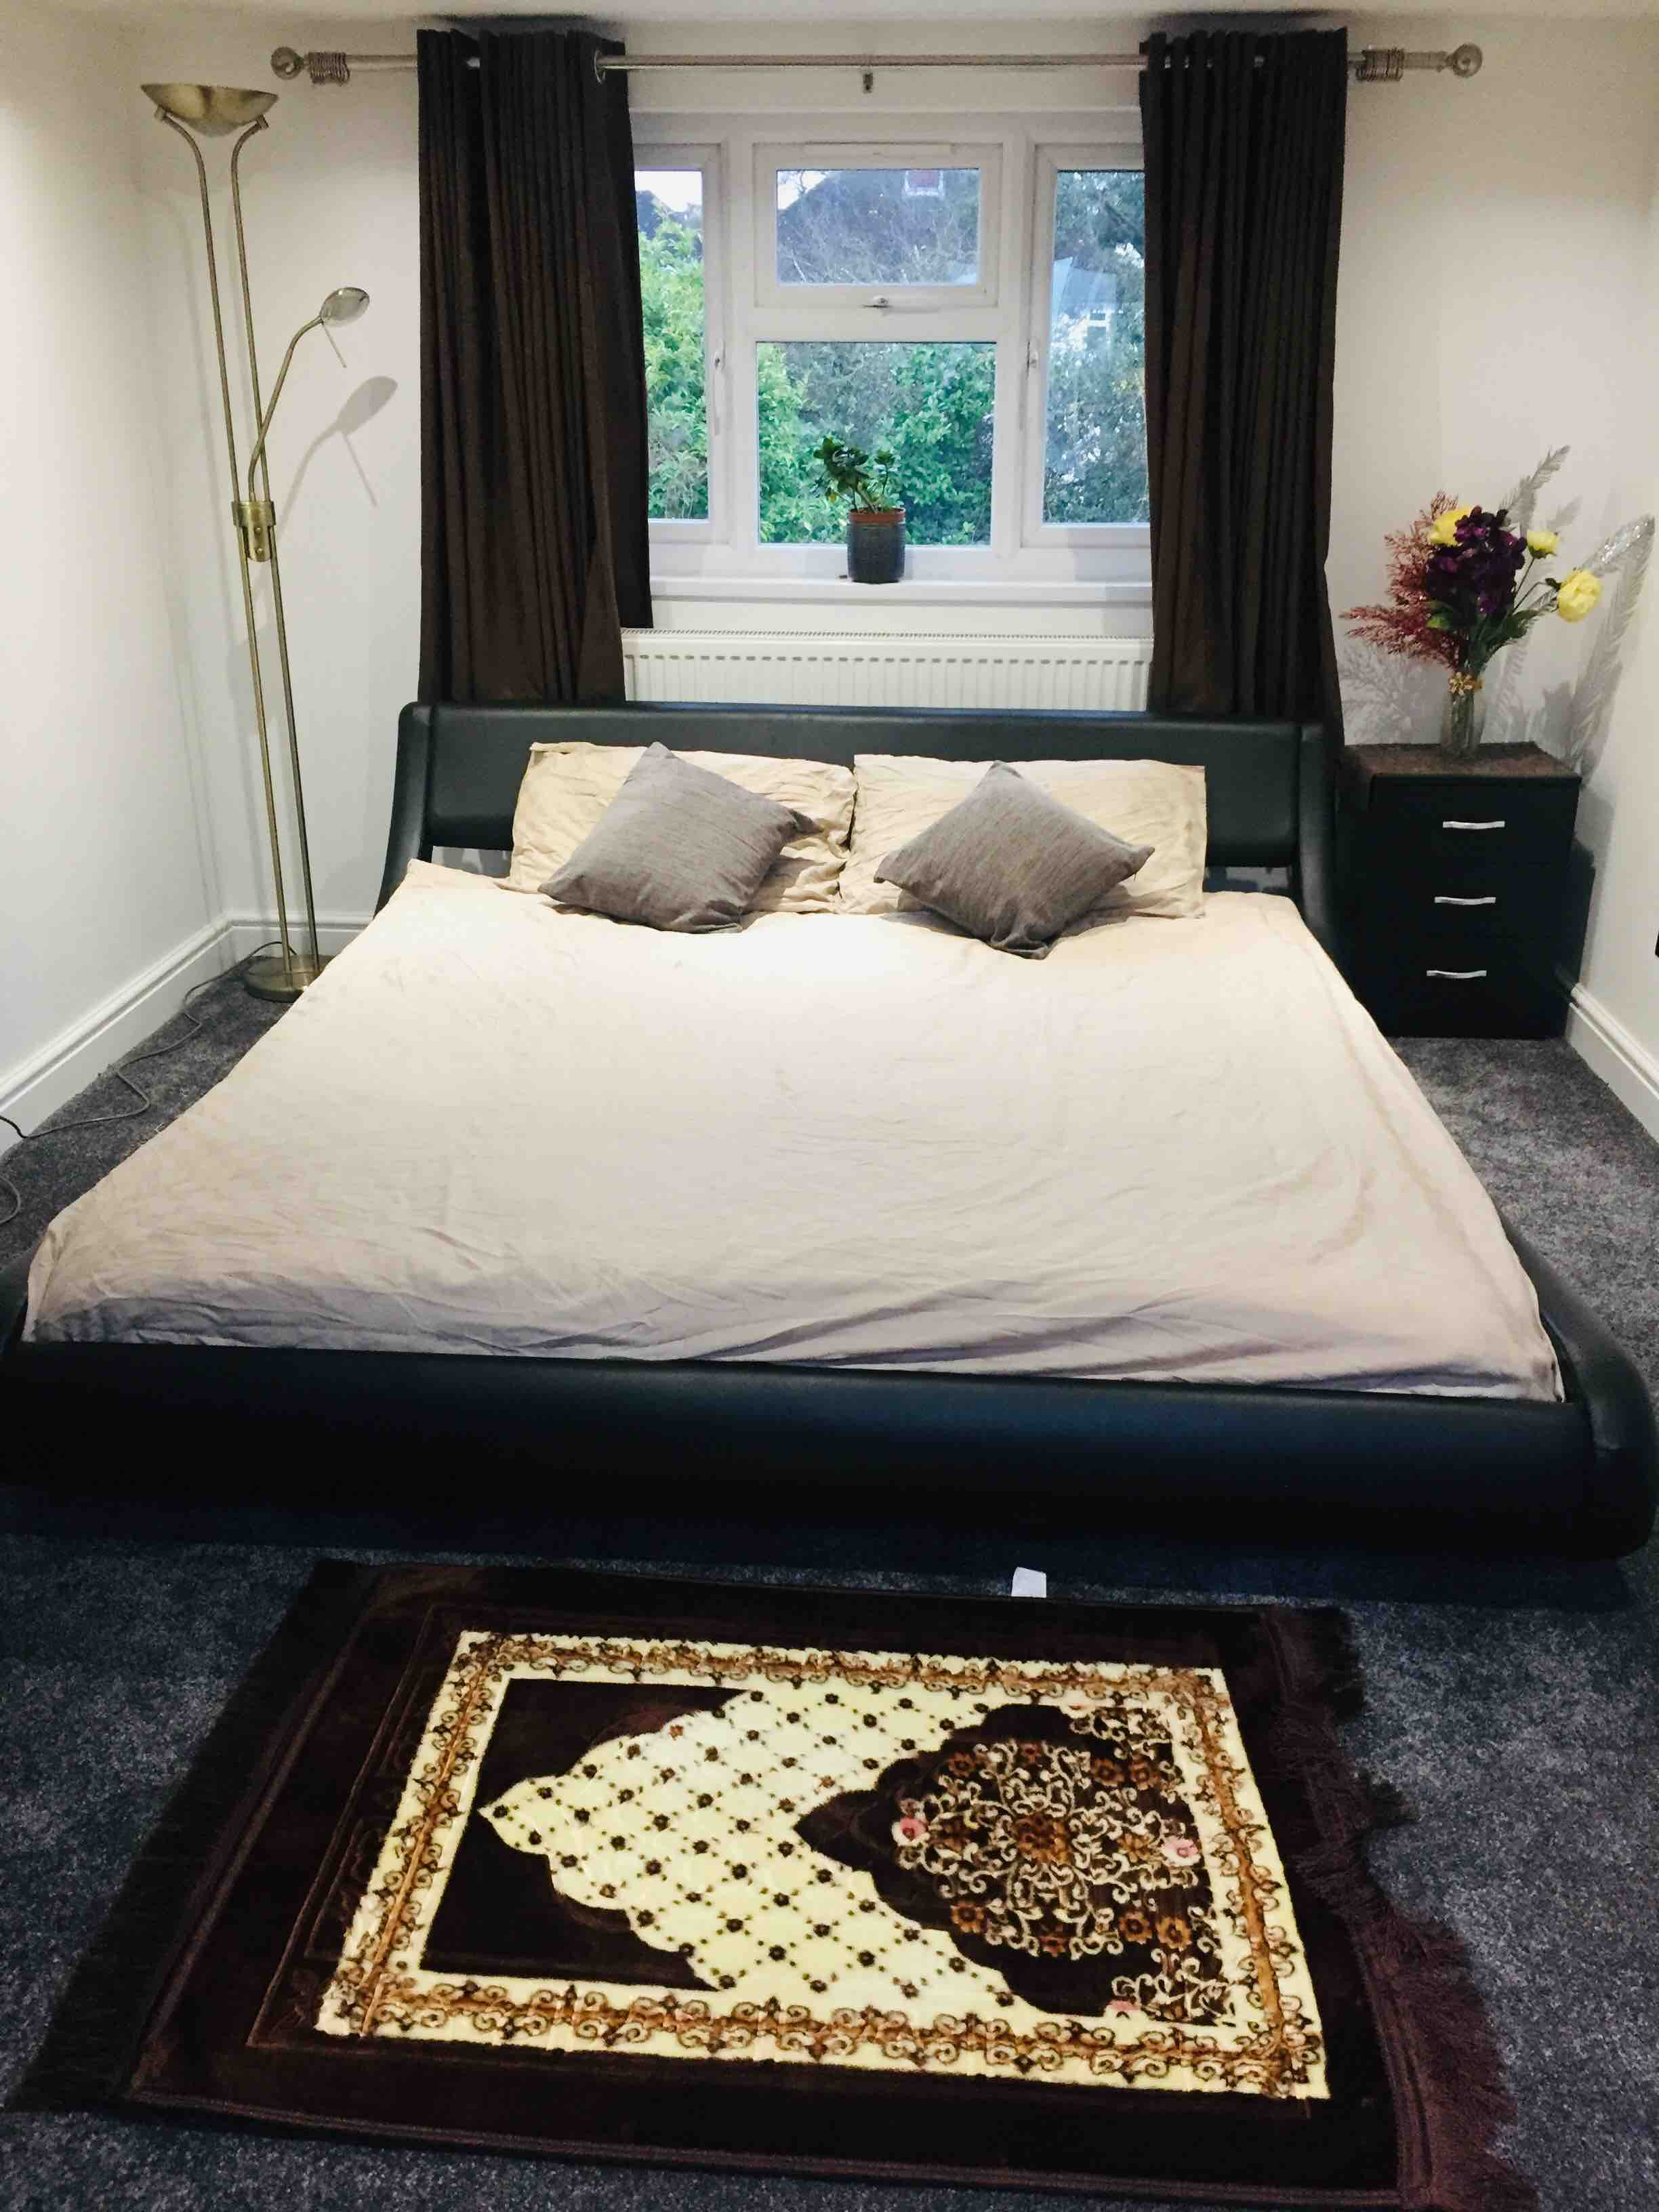 1 room in Headington, Oxford, OX30AP RoomsLocal image